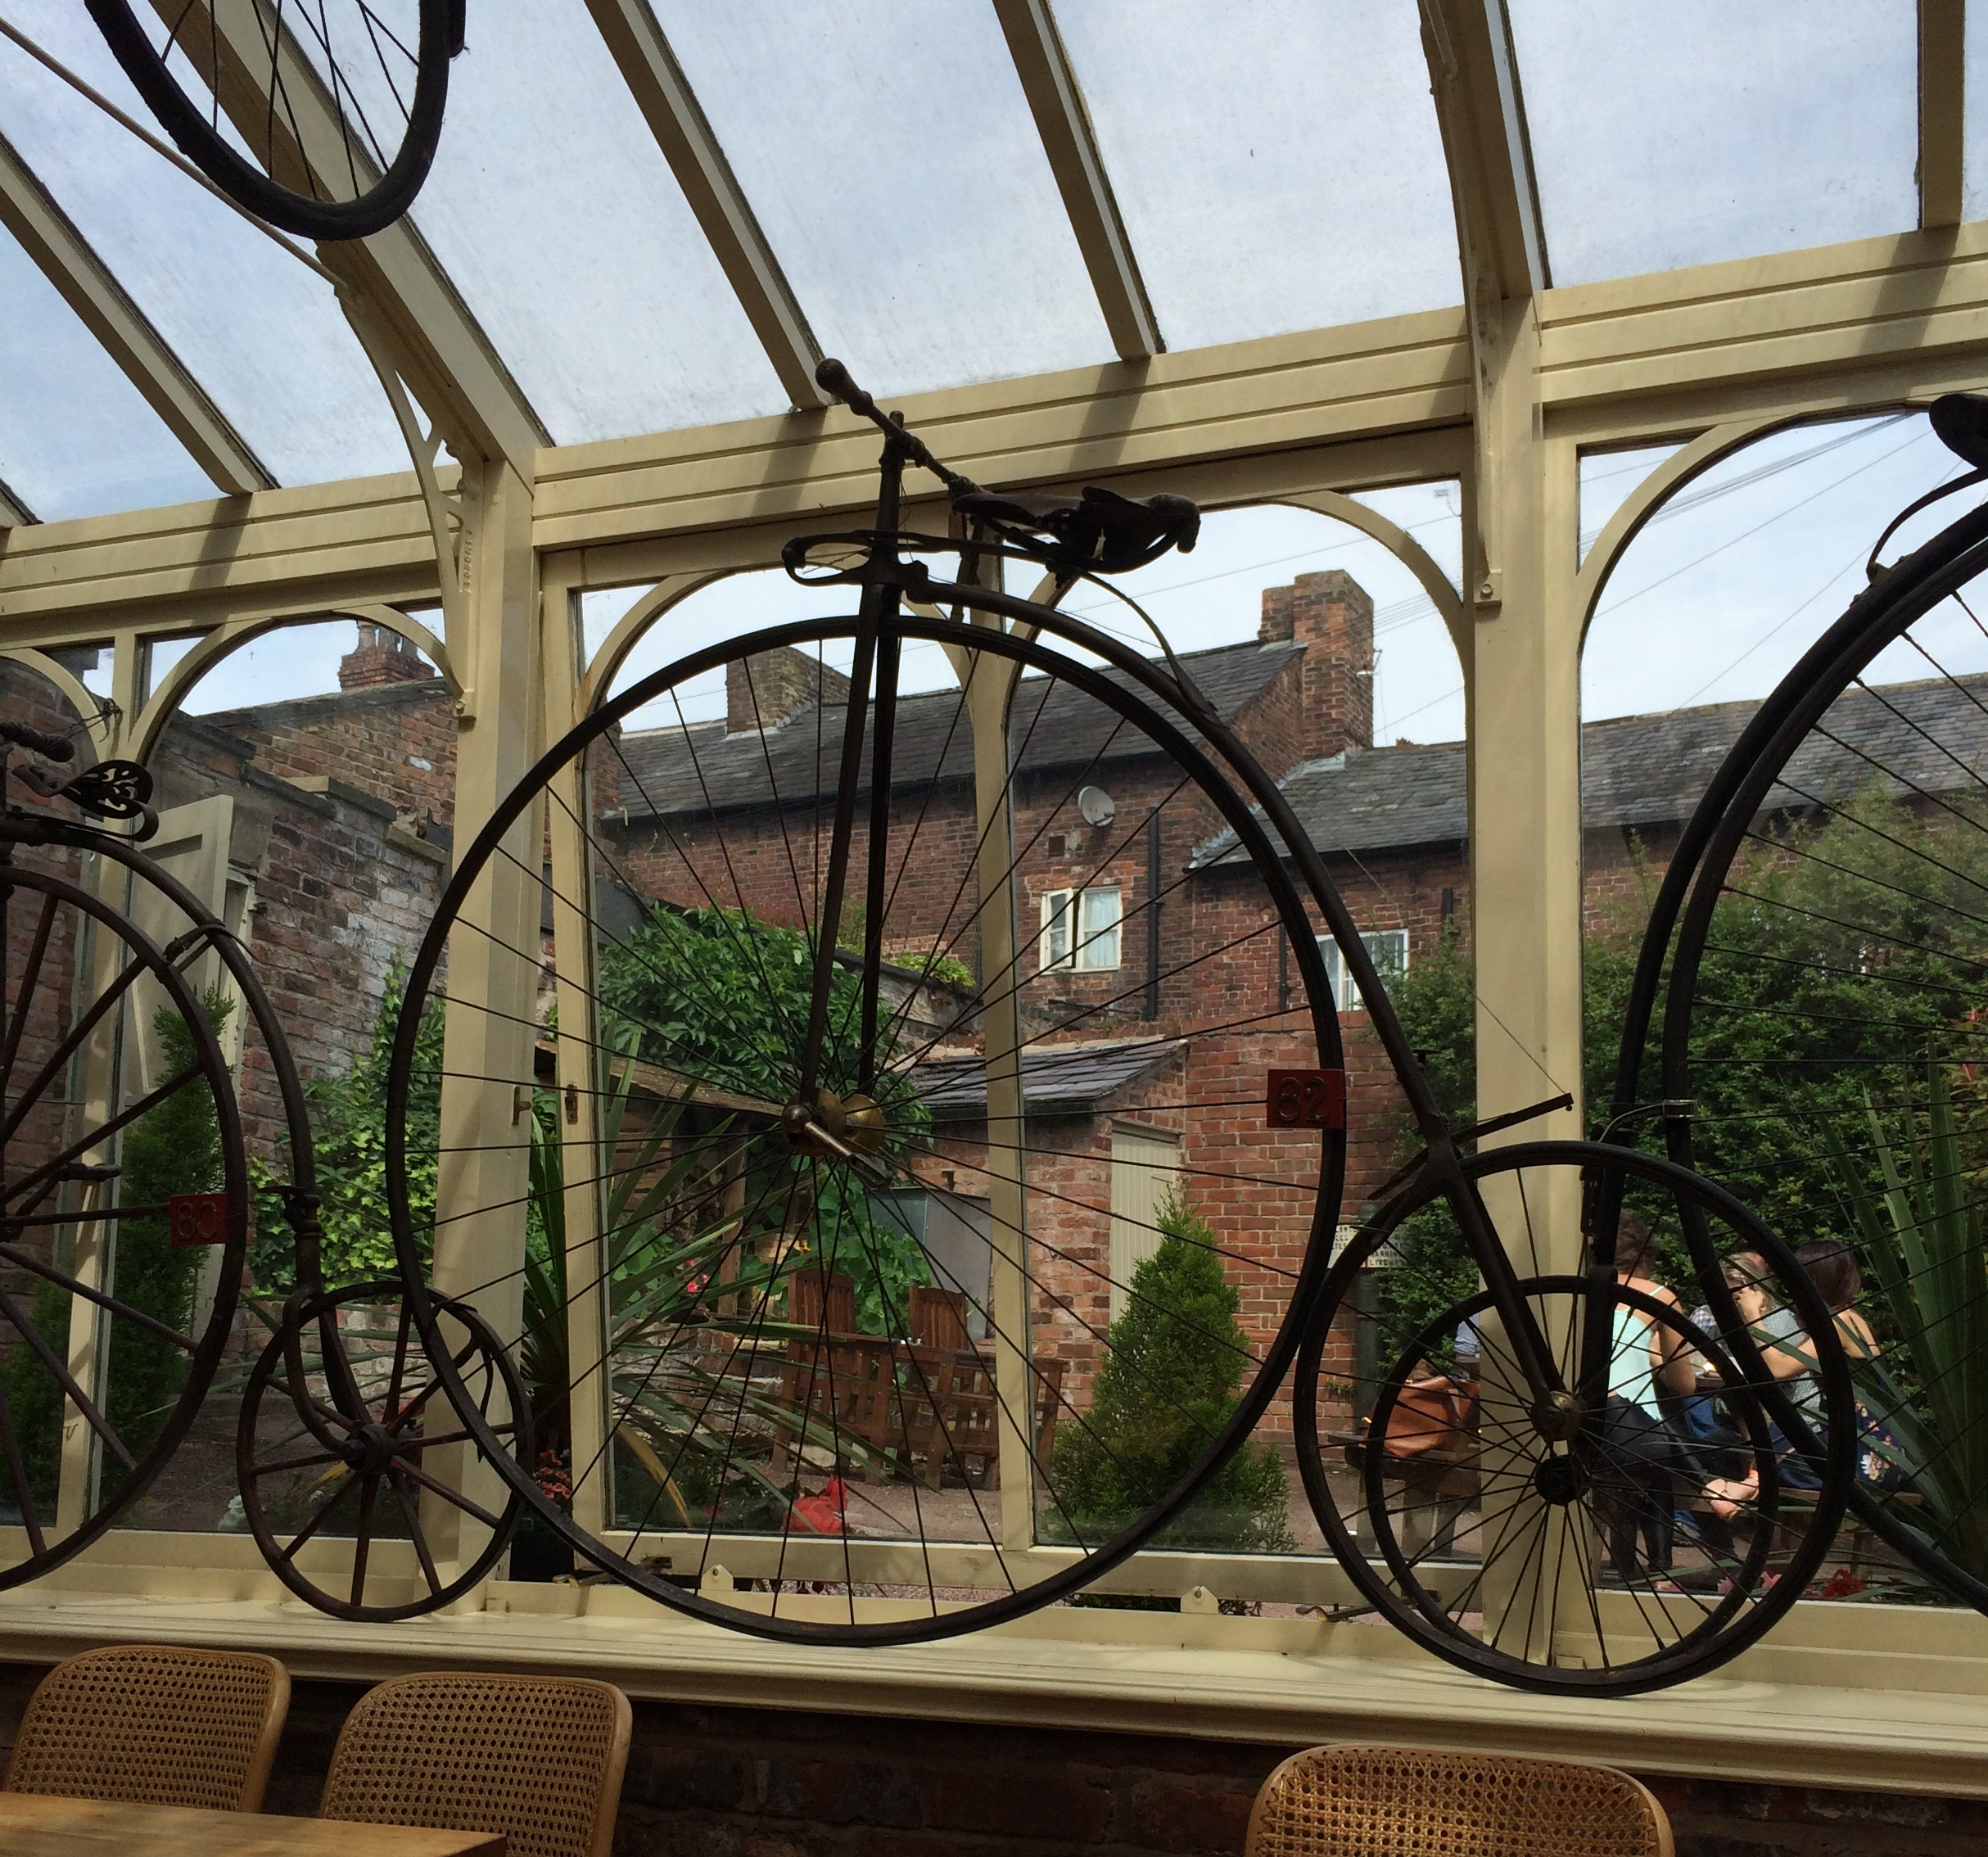 A huge number of Pennyfarthings to view.